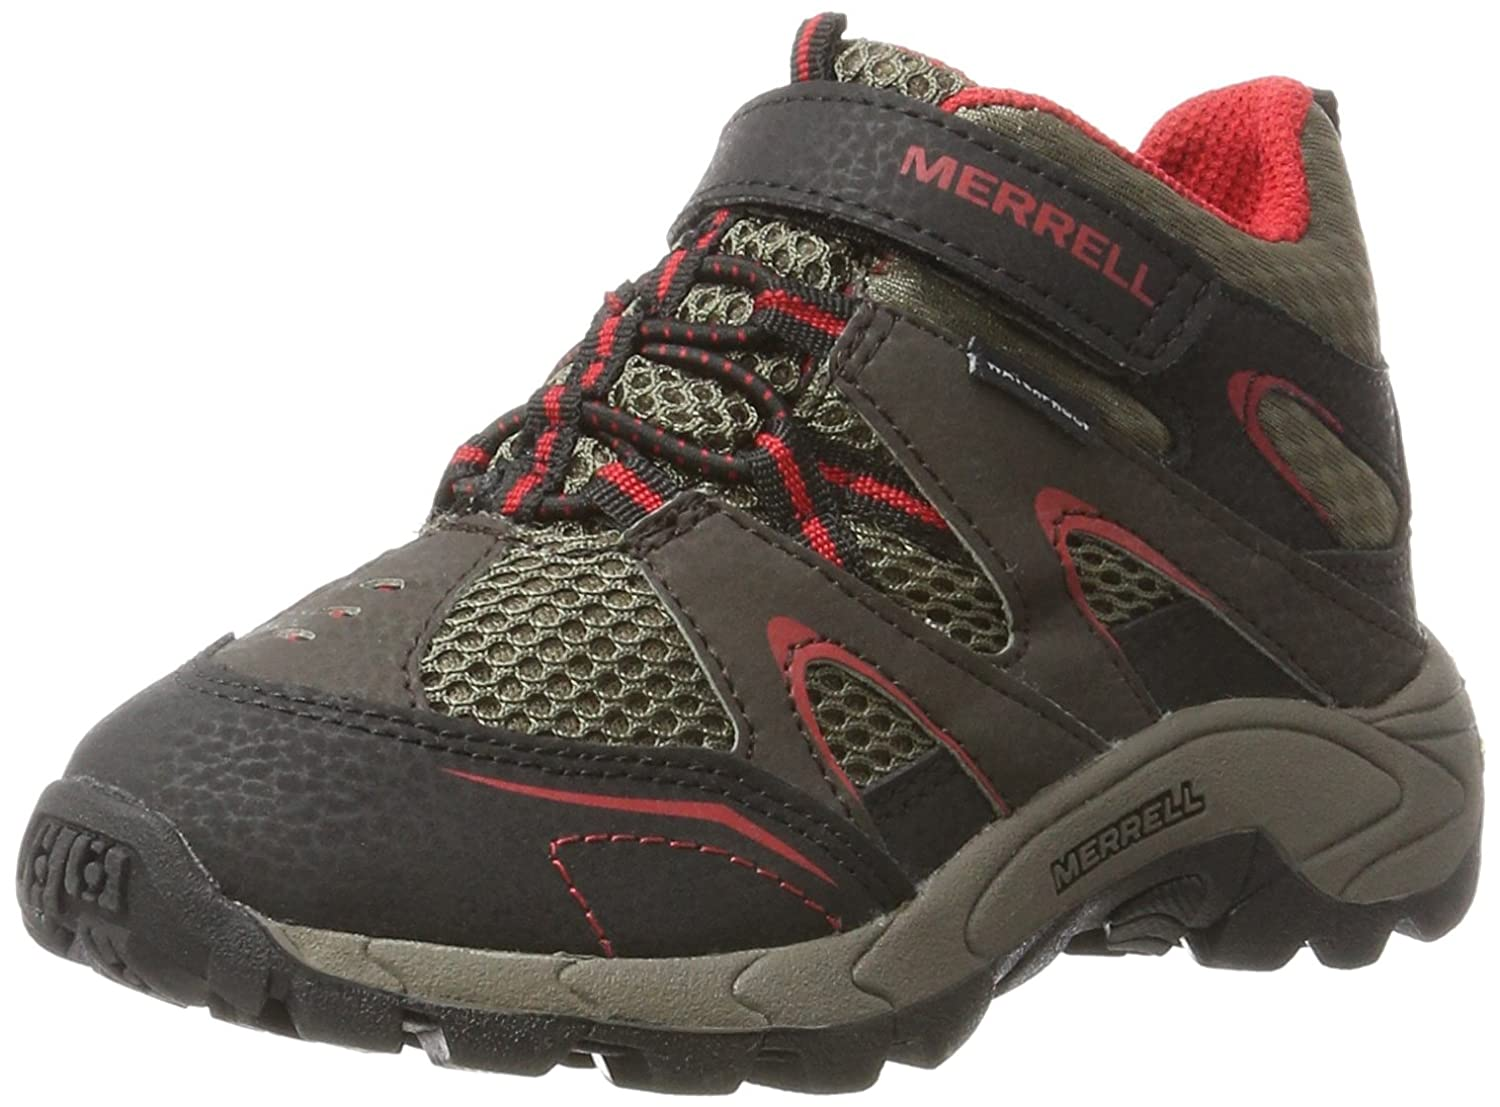 Merrell Hilltop Quick Close Waterproof Hiking Boot (Little Kid) HILLTOP Quick Close WTRPF - K